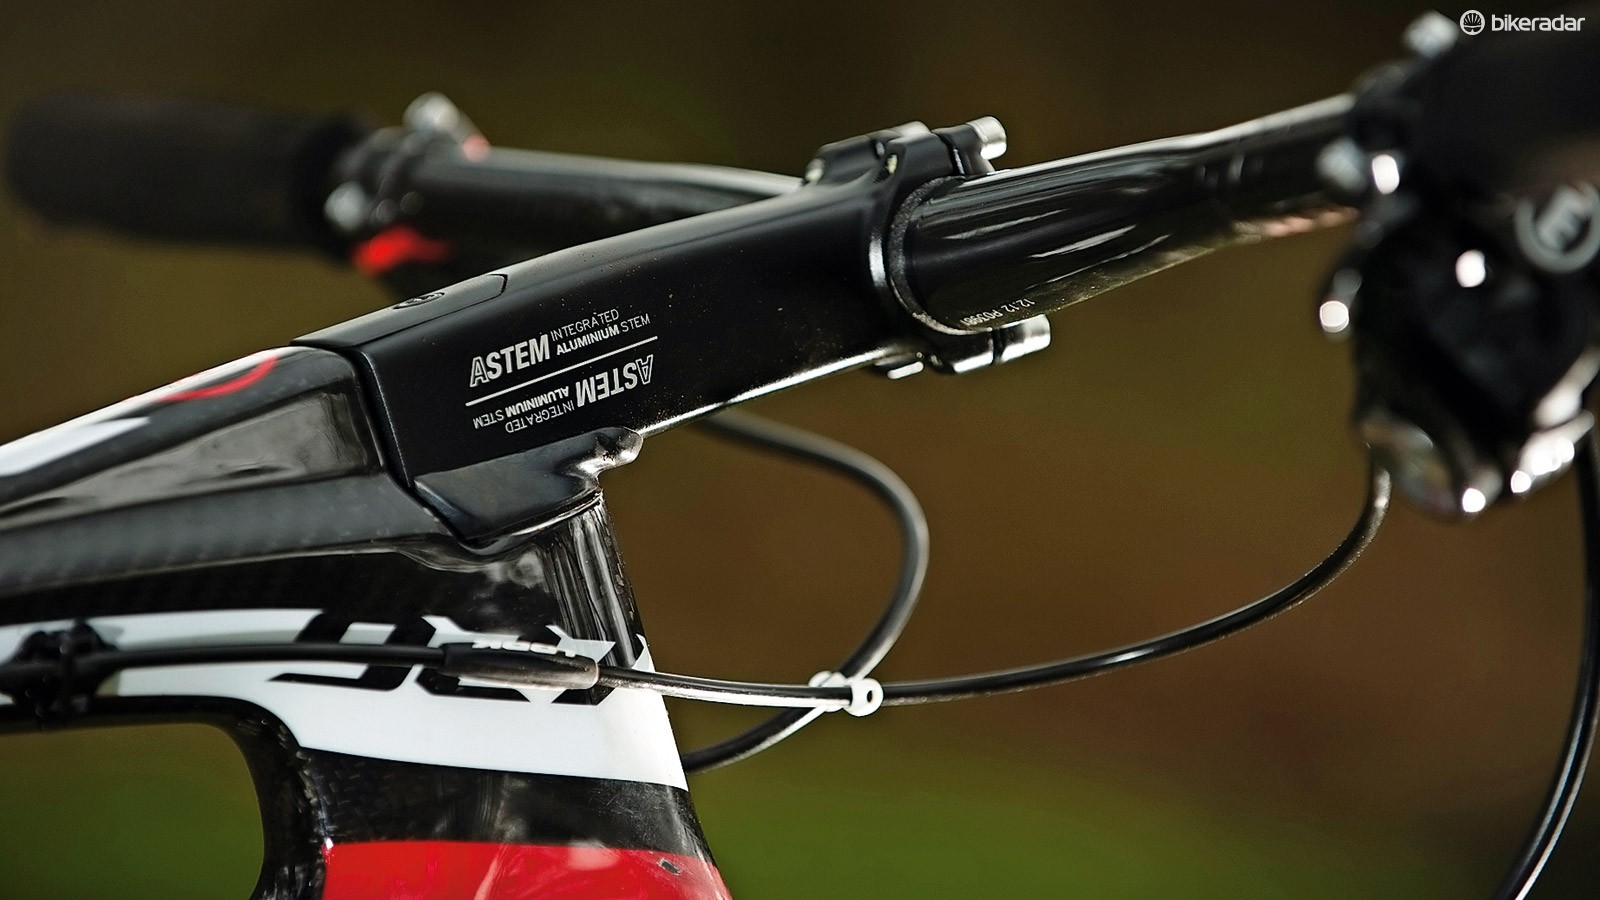 The stock 110mm stem is long enough to put you into next week, so use the 90mm